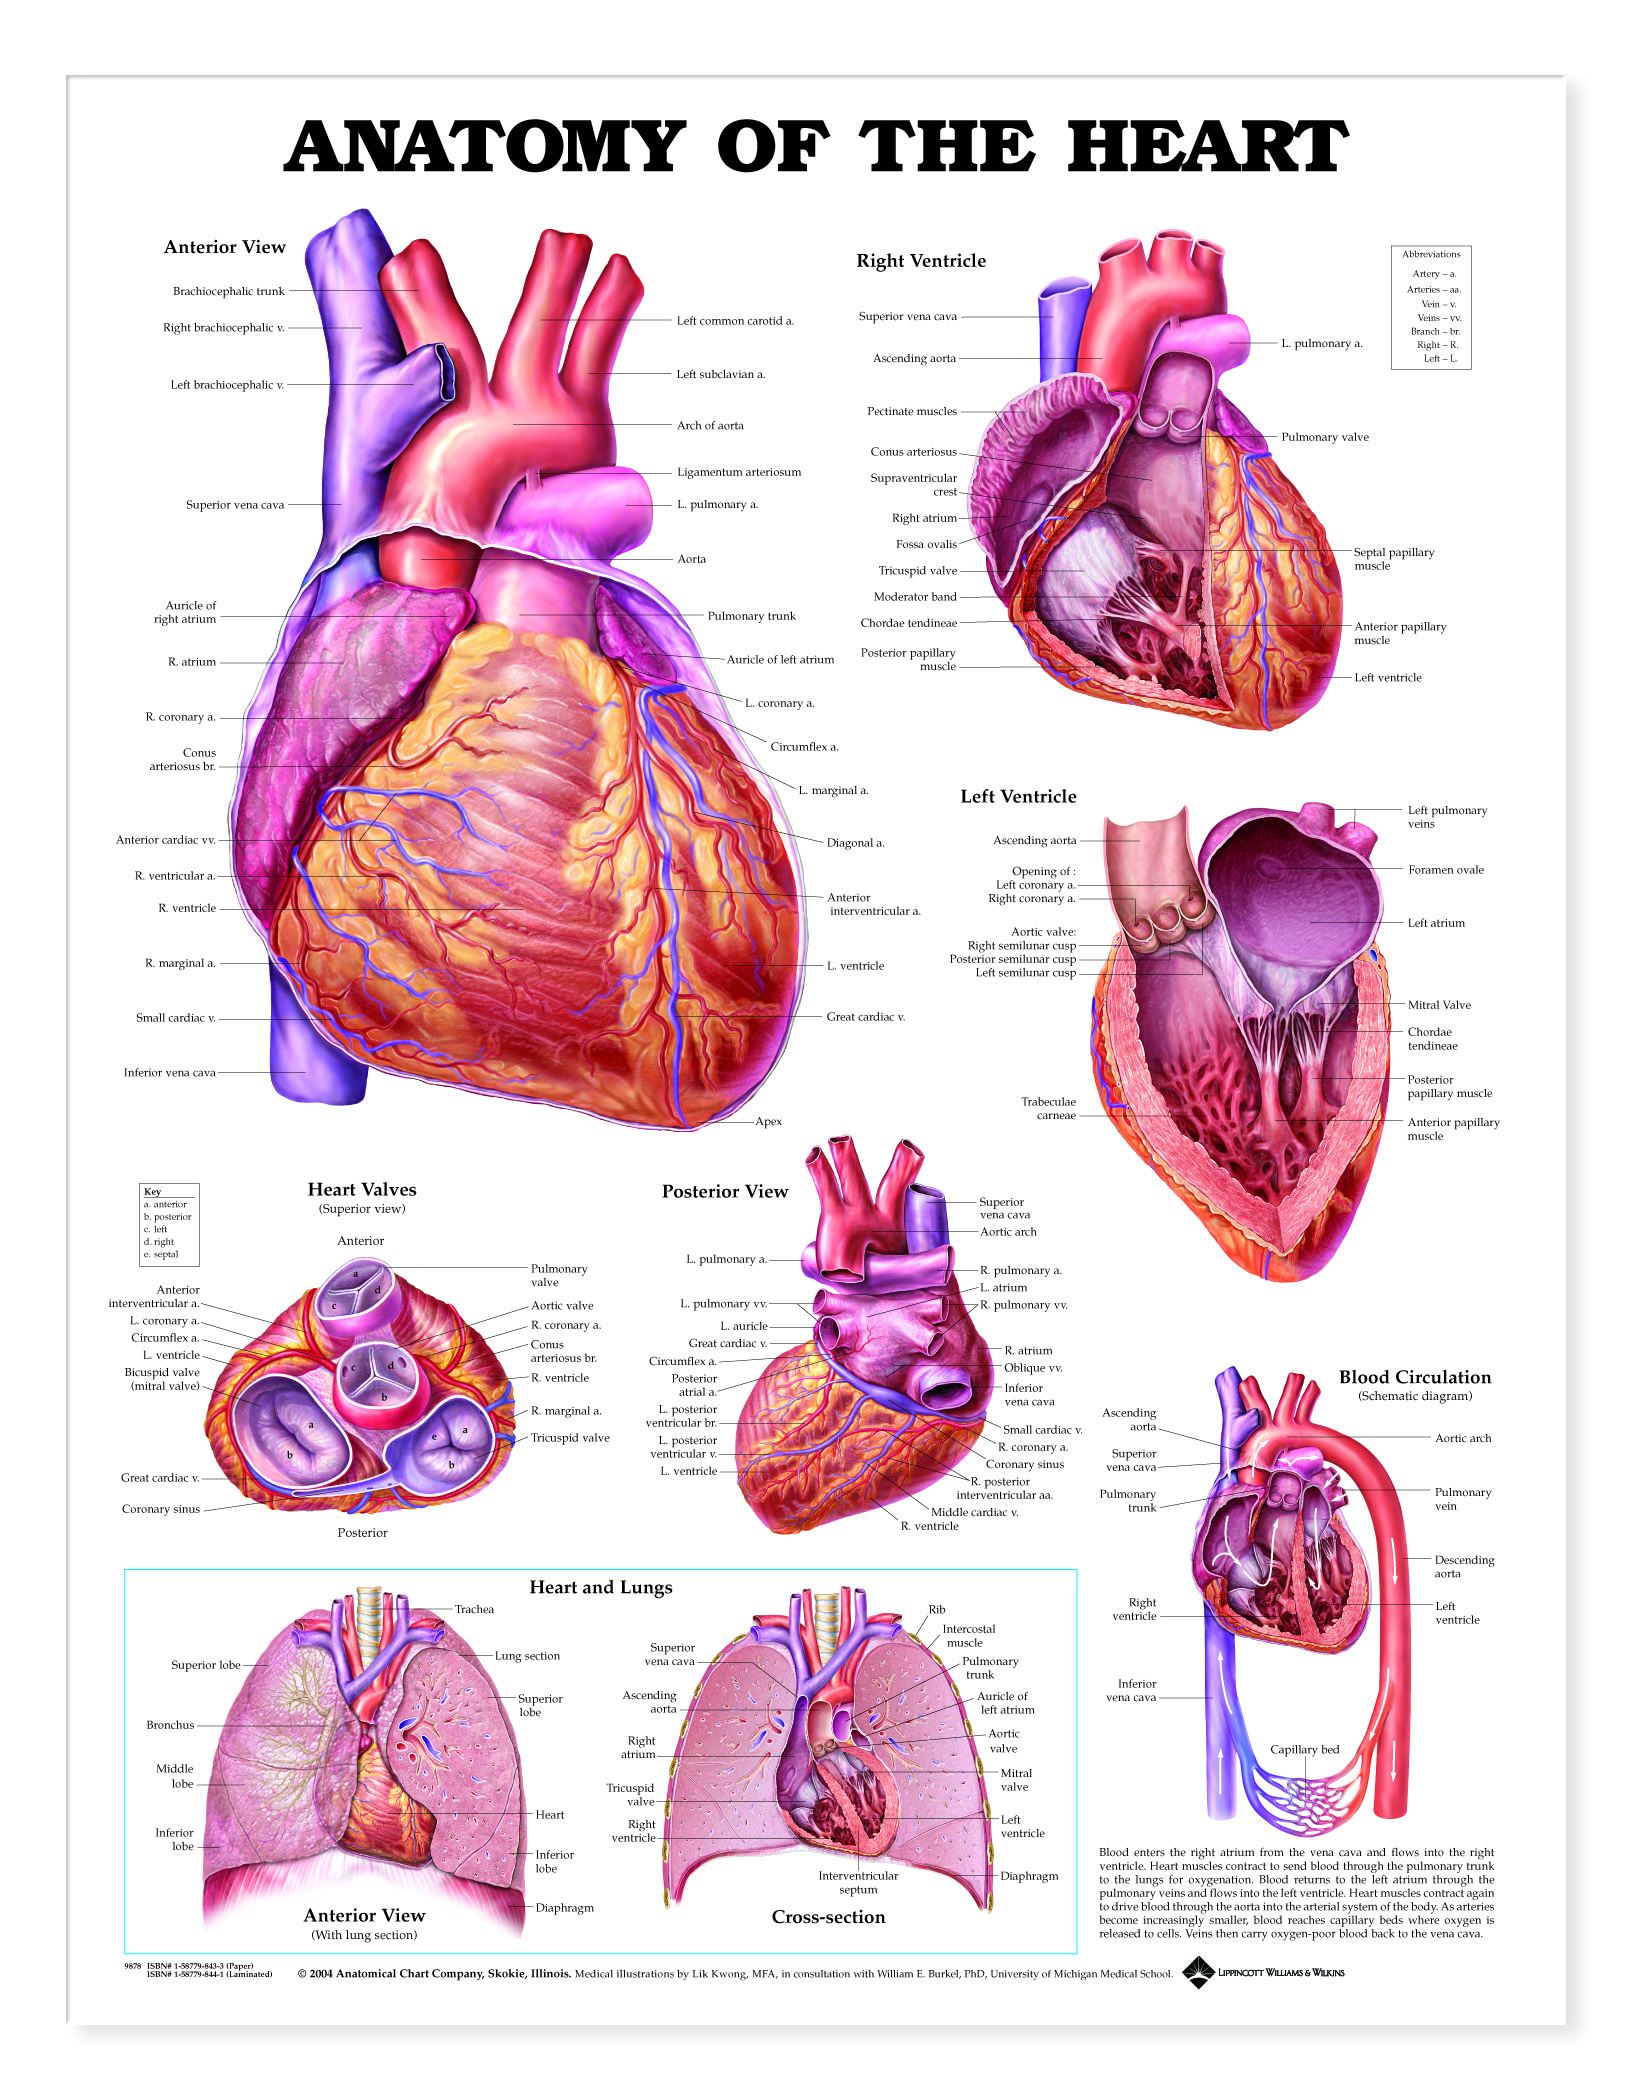 Anatomy Of The Heart Charts 1944